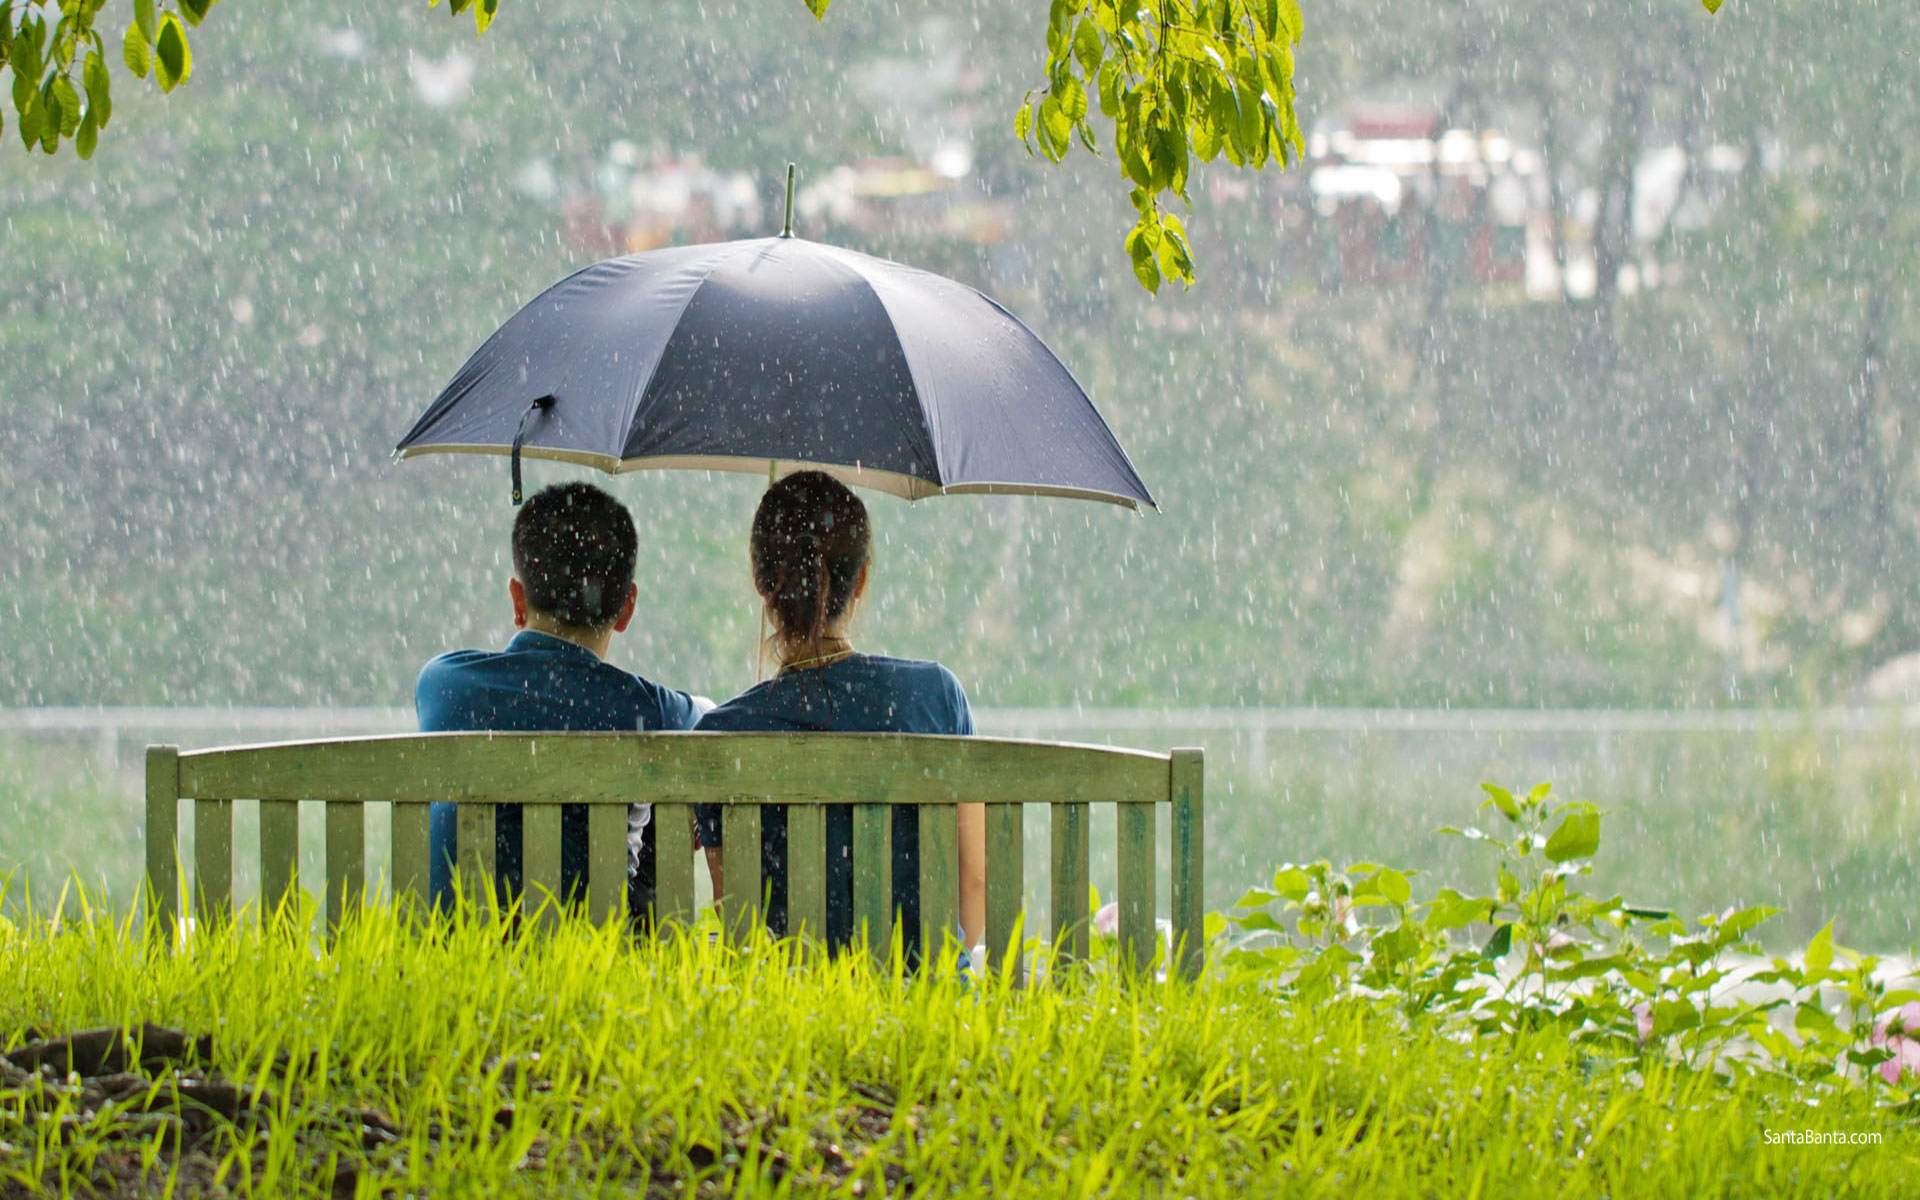 http://www.chobirdokan.com/wp-content/uploads/Romantic-couple-sitting-in-park-while-raining.jpg